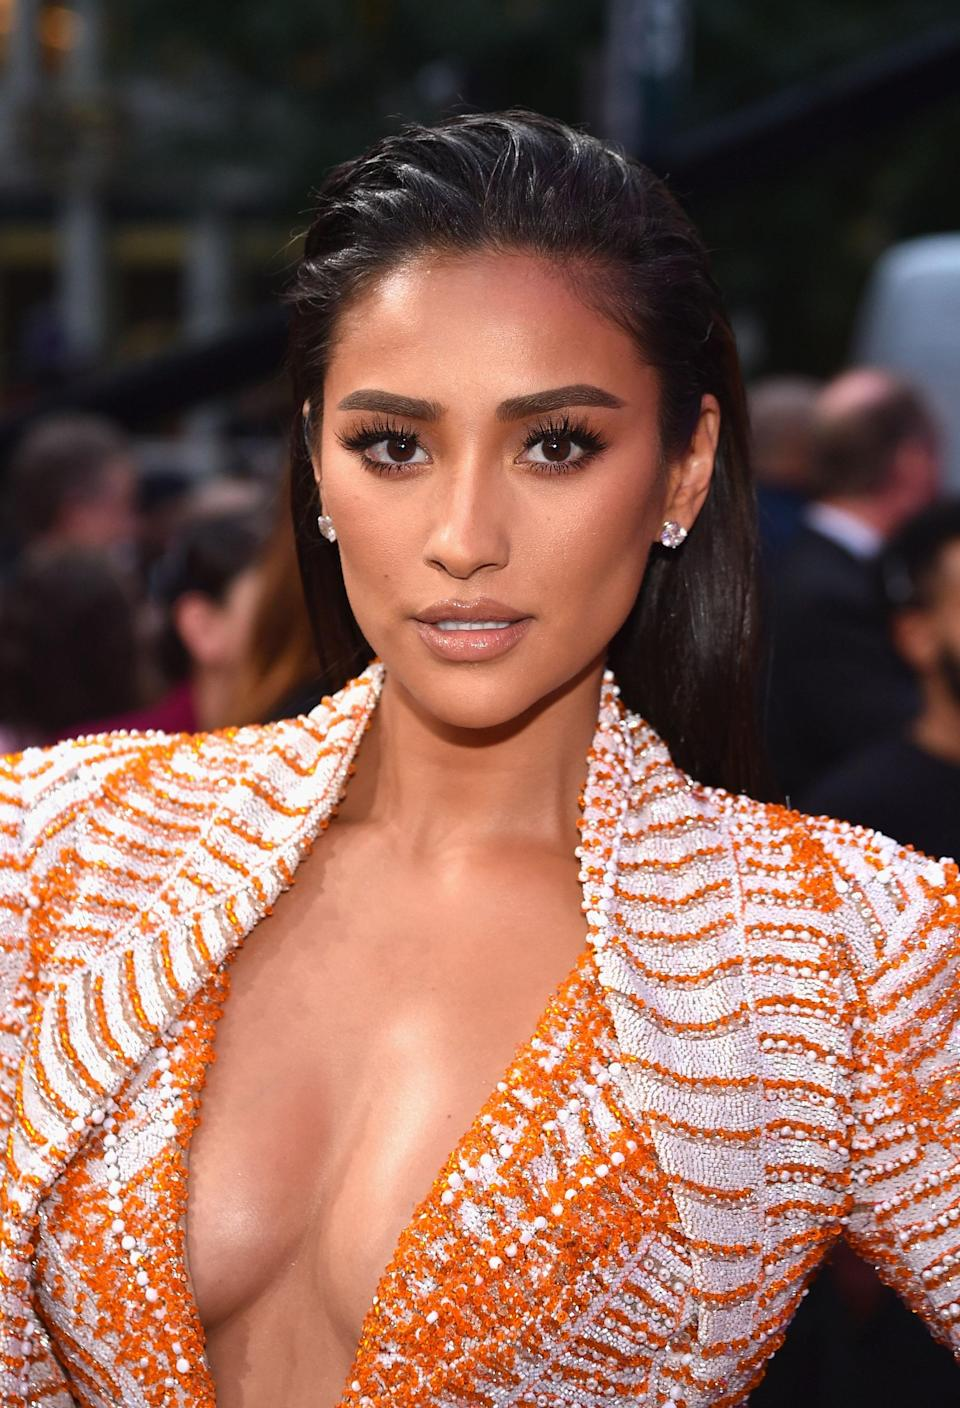 This look is <em>everything</em>, and from the orange outfit to her slicked back hair, we cannot get enough of Shay at the 2018 VMAs.